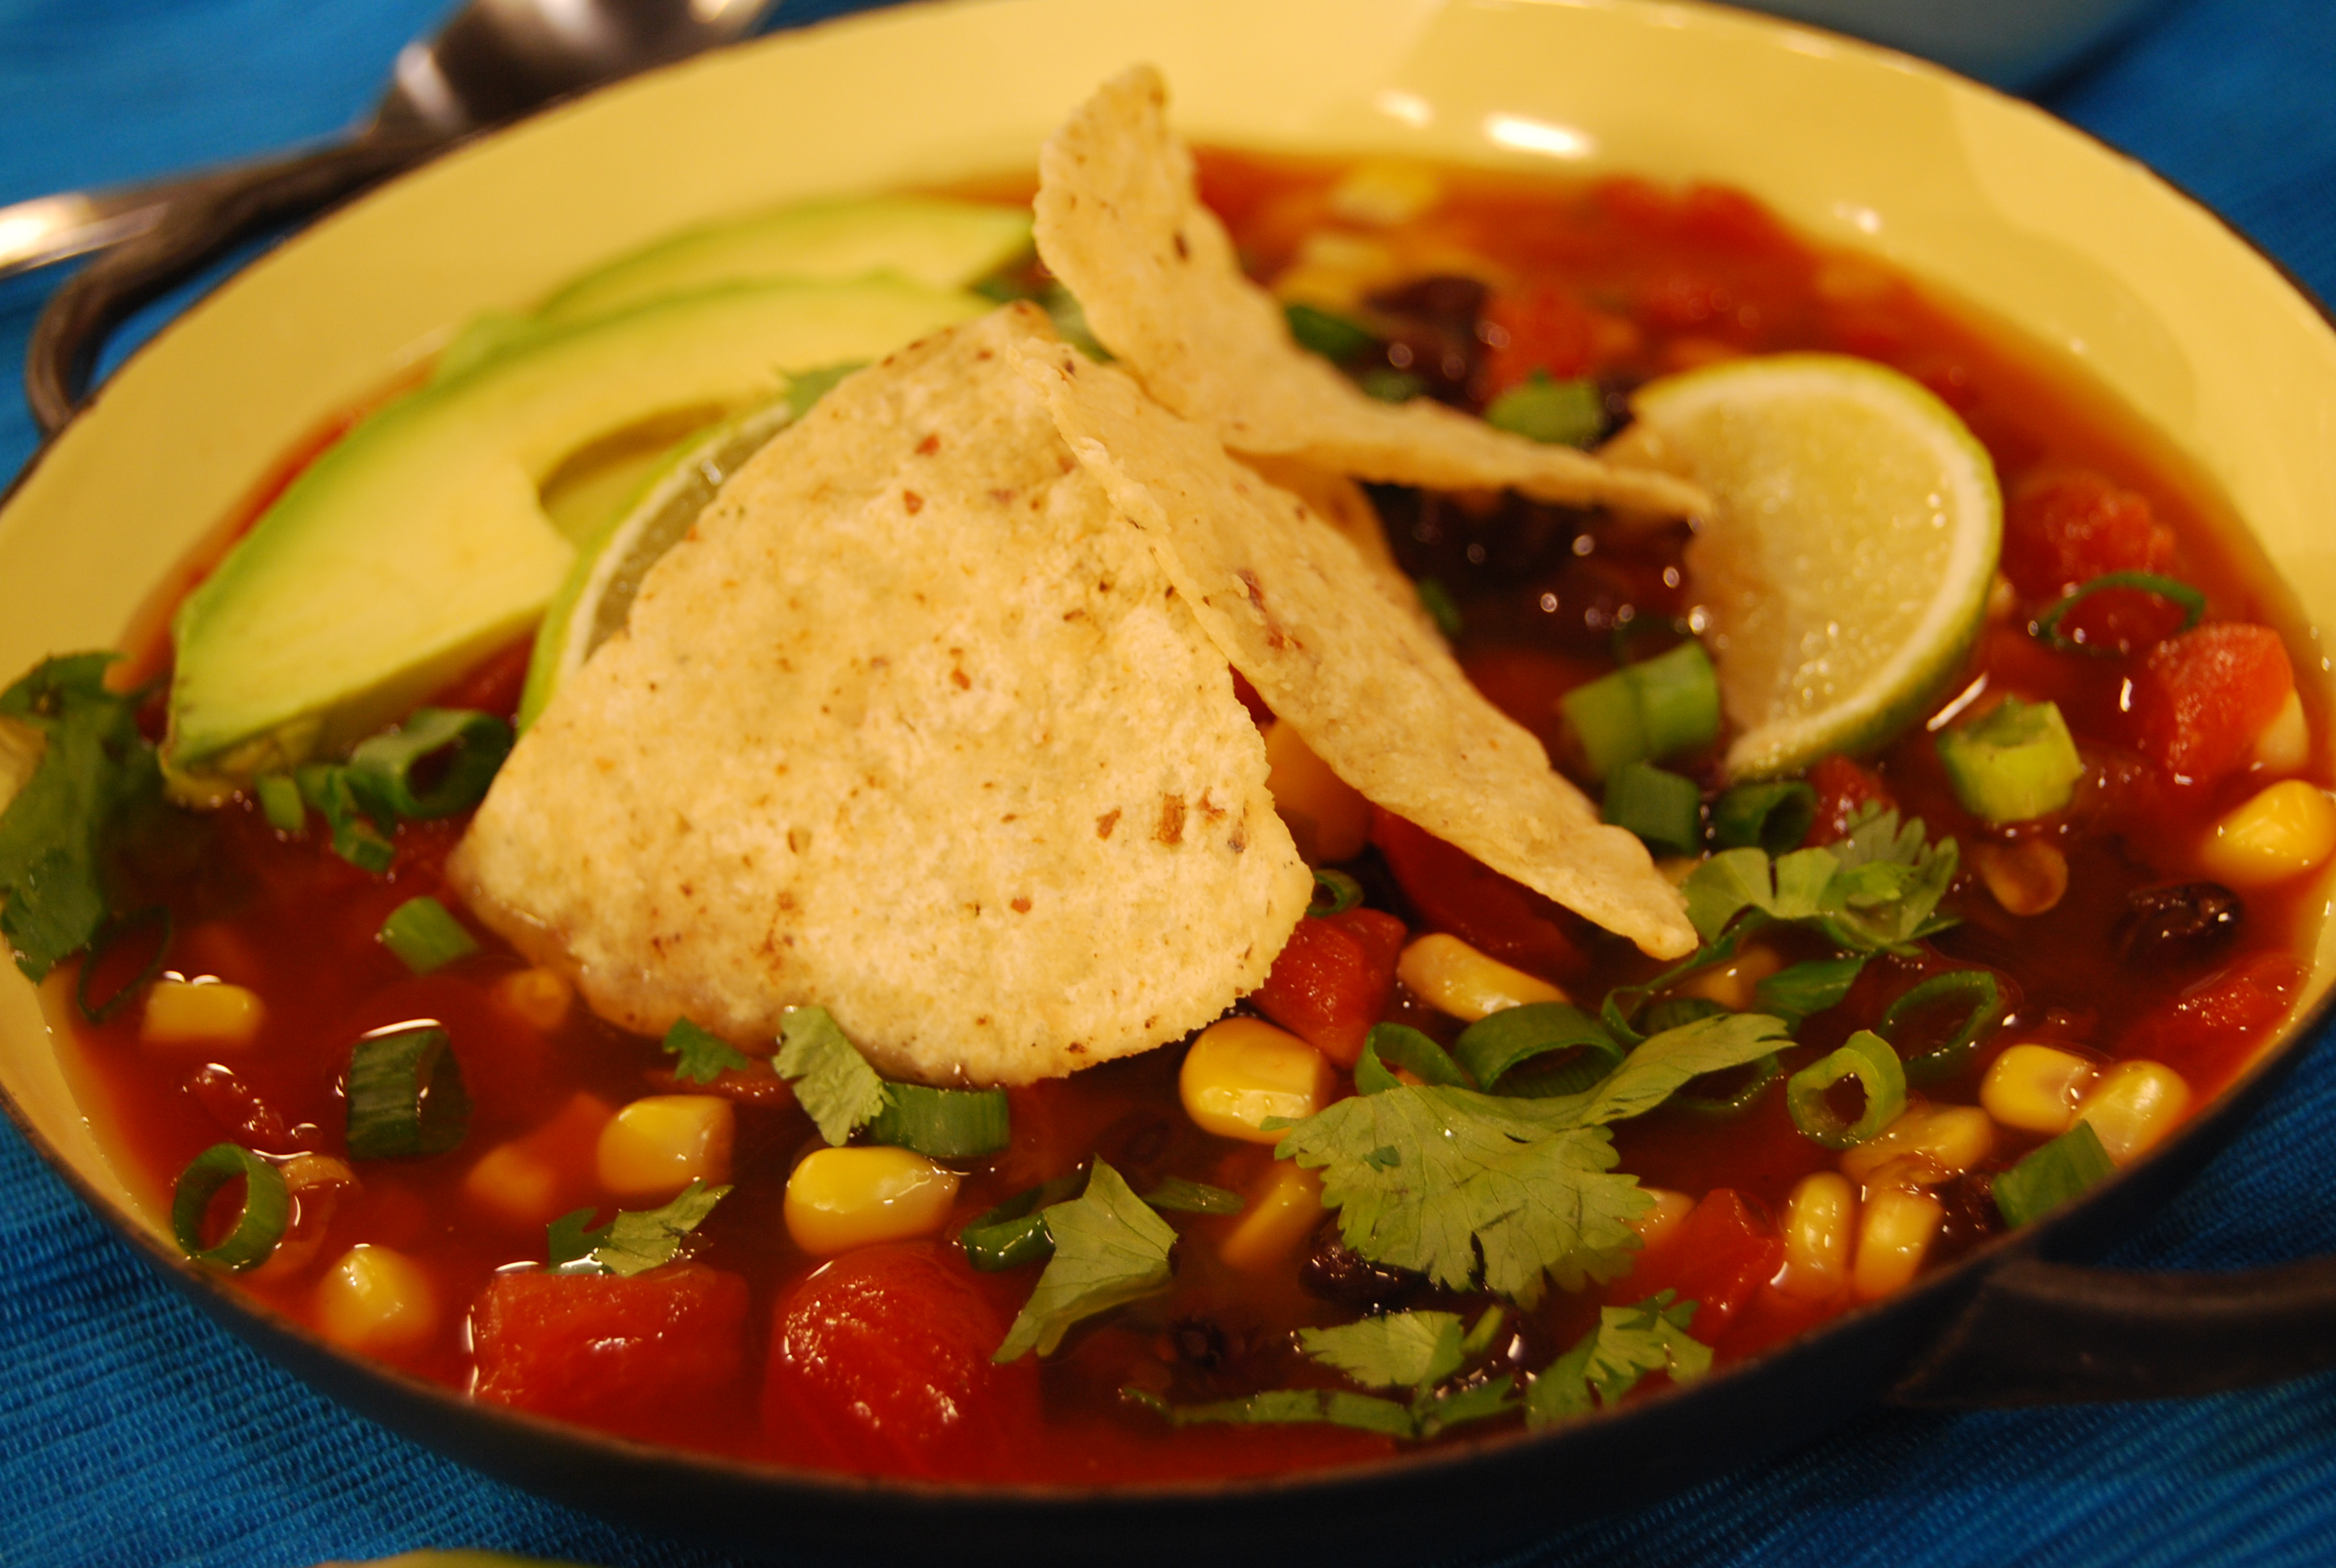 tortilla soup is a mexican style soup that usually has